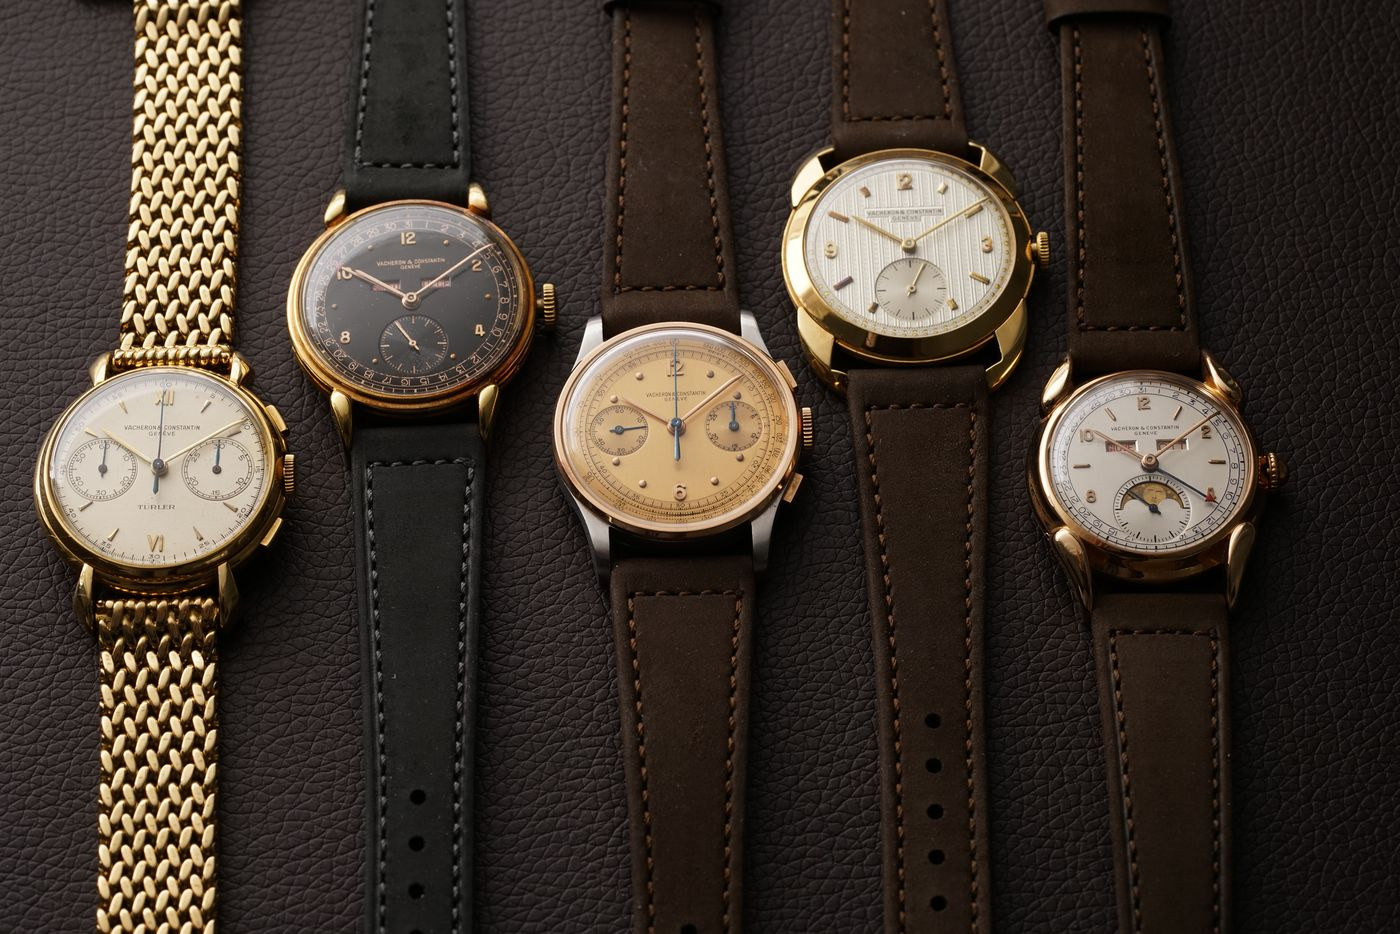 In a very small way, The Geneva Watch Auction: NINE will pay tribute to some of the greatest wristwatch designs made by Vacheron Constantin, the oldest continuously operating Swiss watch company, during the 20th century. Geneva's Head of Sale, Alex Ghotbi, explains why.